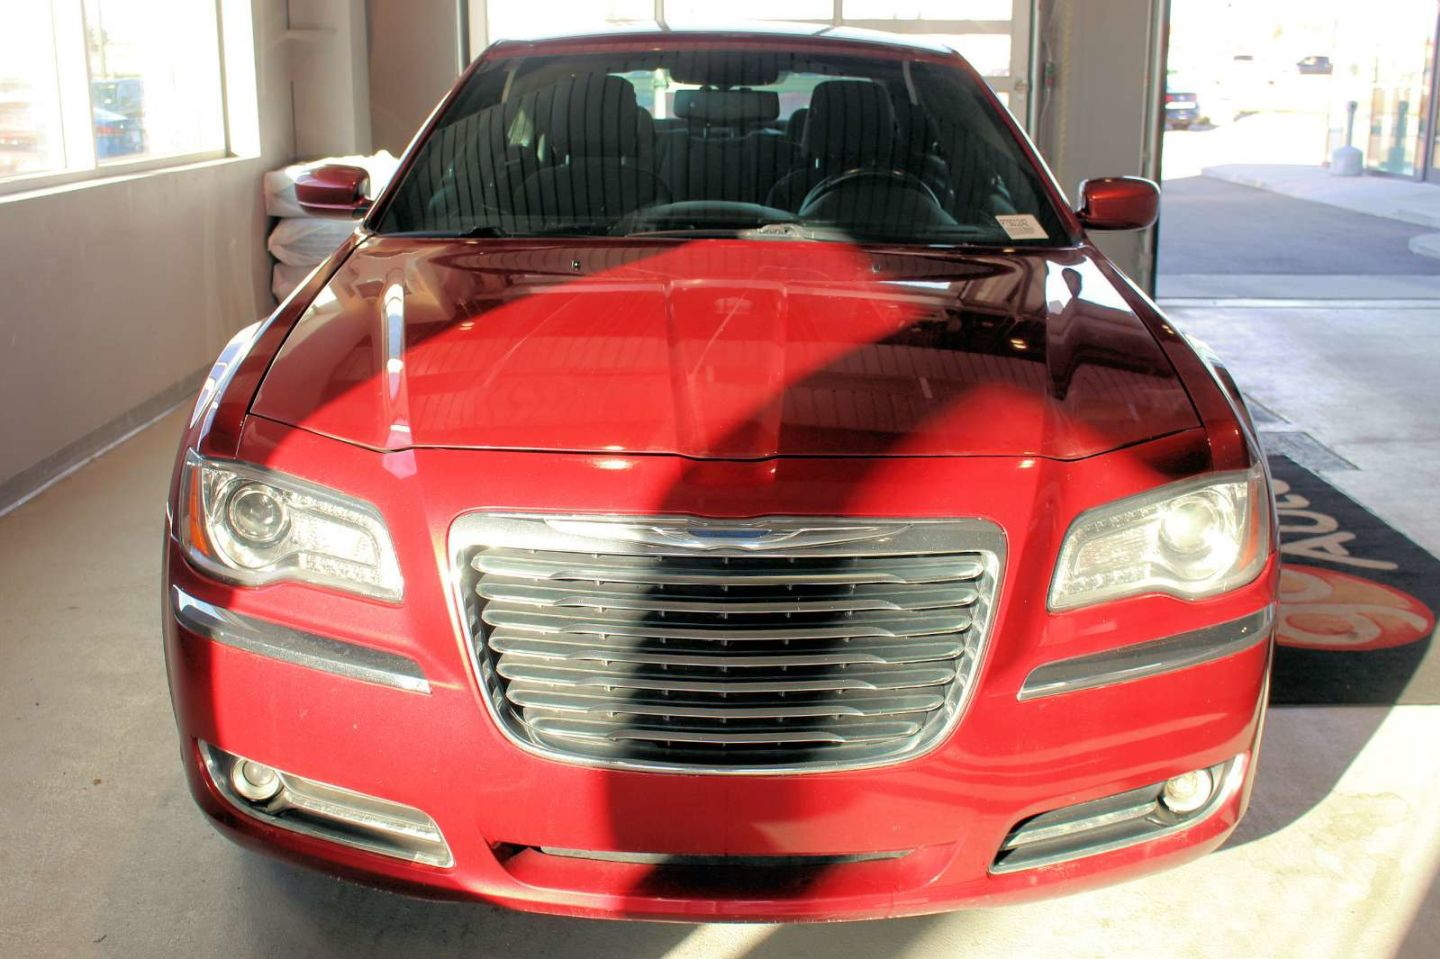 2013 Chrysler 300 Touring for sale in Spruce Grove, Alberta